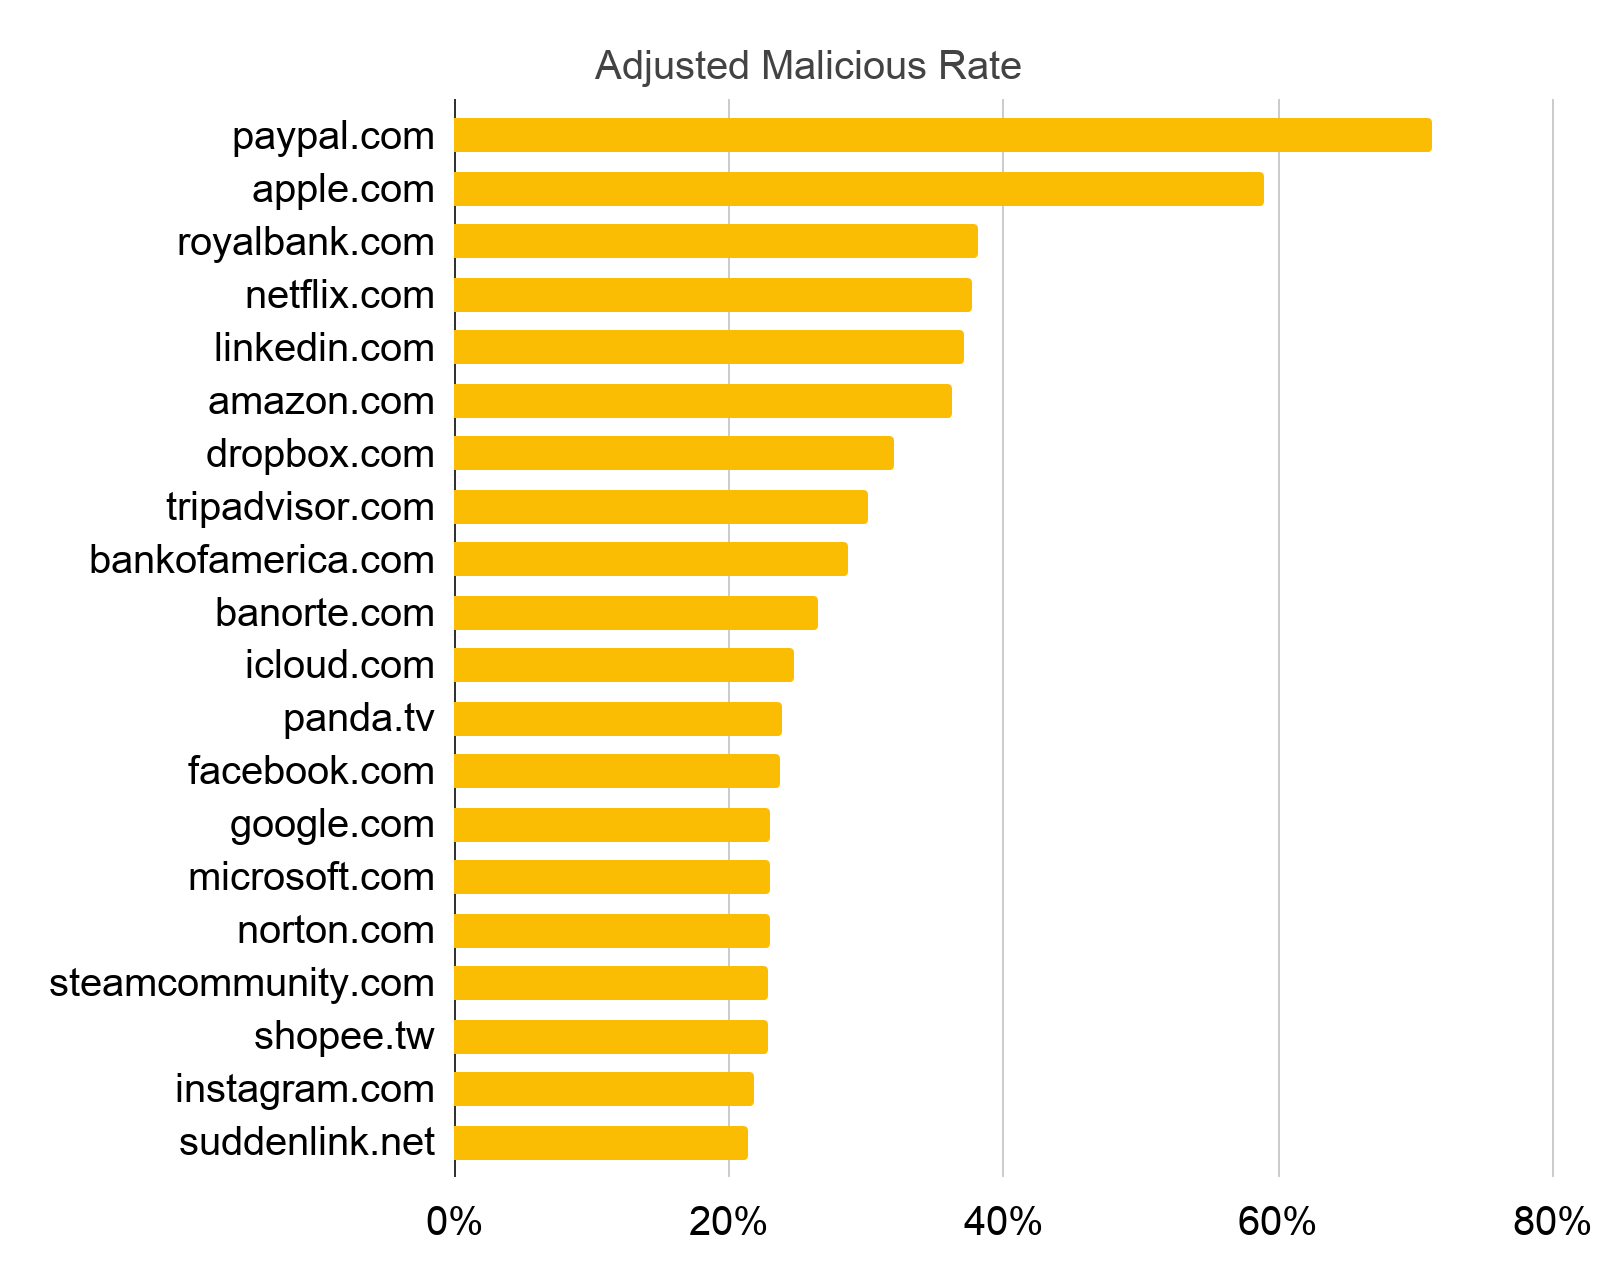 The Top 20 domains most abused by cybersquatting in December 2019 include paypal.com, apple.com, royalbank.com, netflix.com, linkedin.com, amazon.com, dropbox.com, tripadvisor.com, bankofamerica.com, banorte.com, icloud.com, panda.tv, facebook.com, google.com, microsoft.com, norton.com, steamcommunity.com, shopee.tw, instagram.com and suddenlink.net.